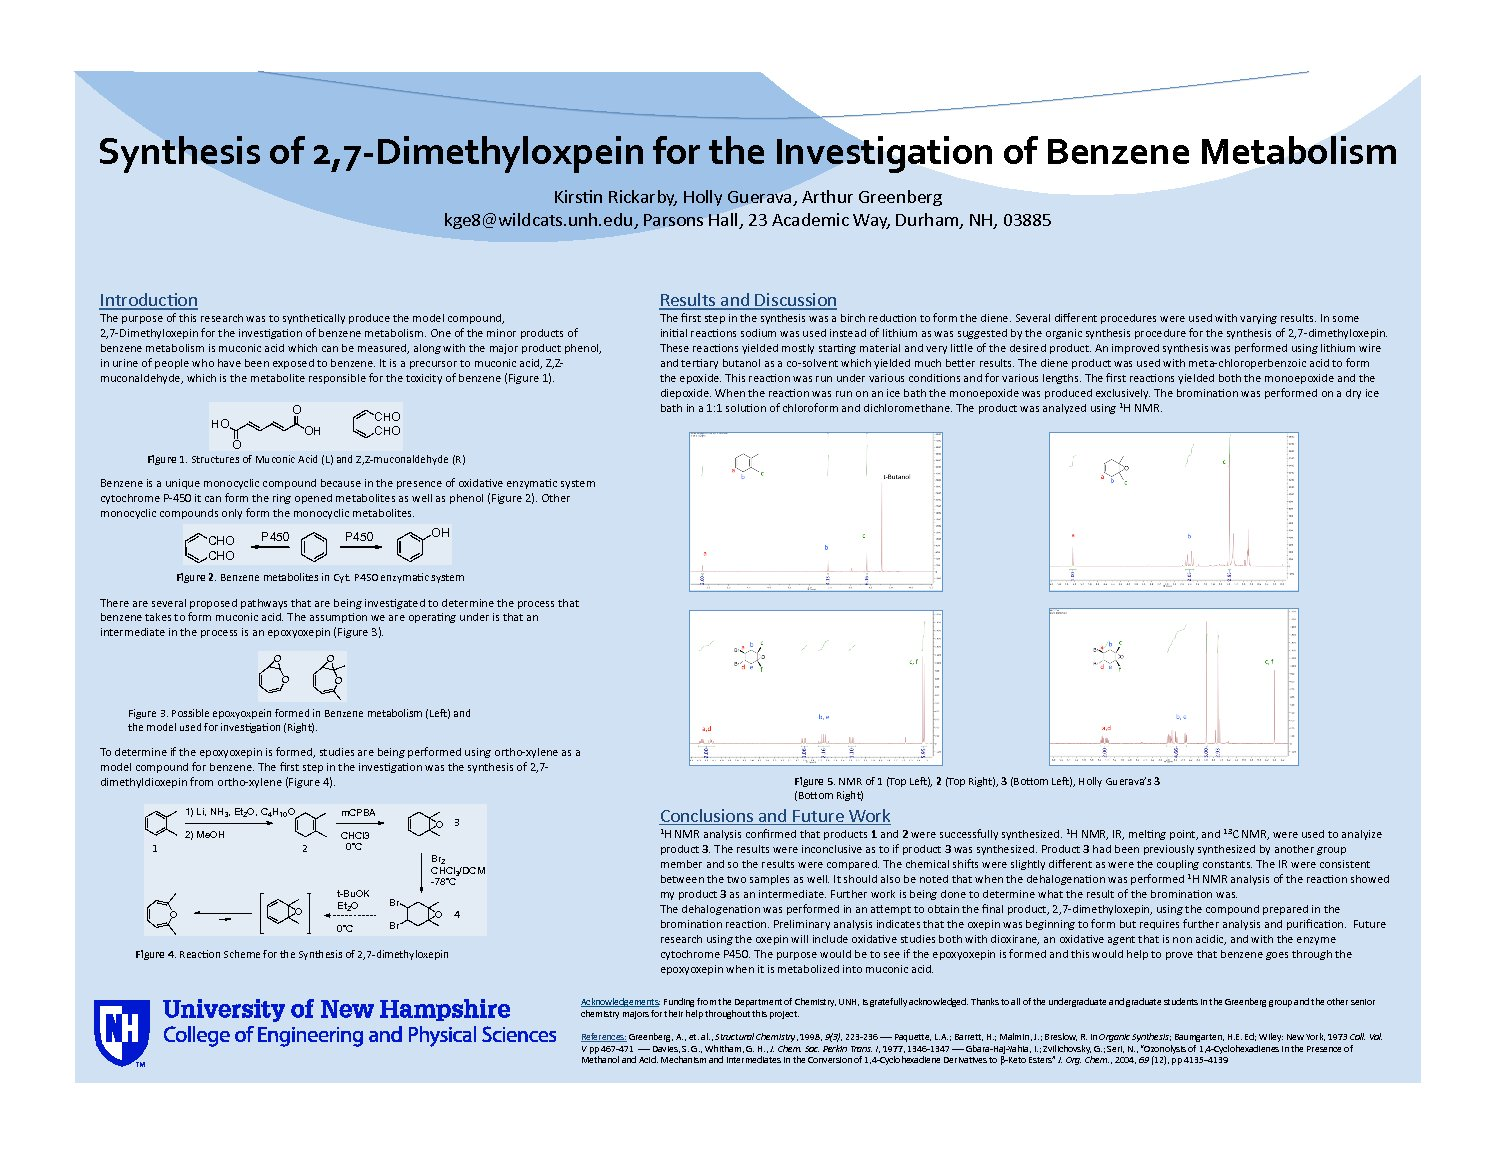 Synthesis Of 2,7-Dimethyloxepin For The Investigation Of Benzene Metabolism by kge8